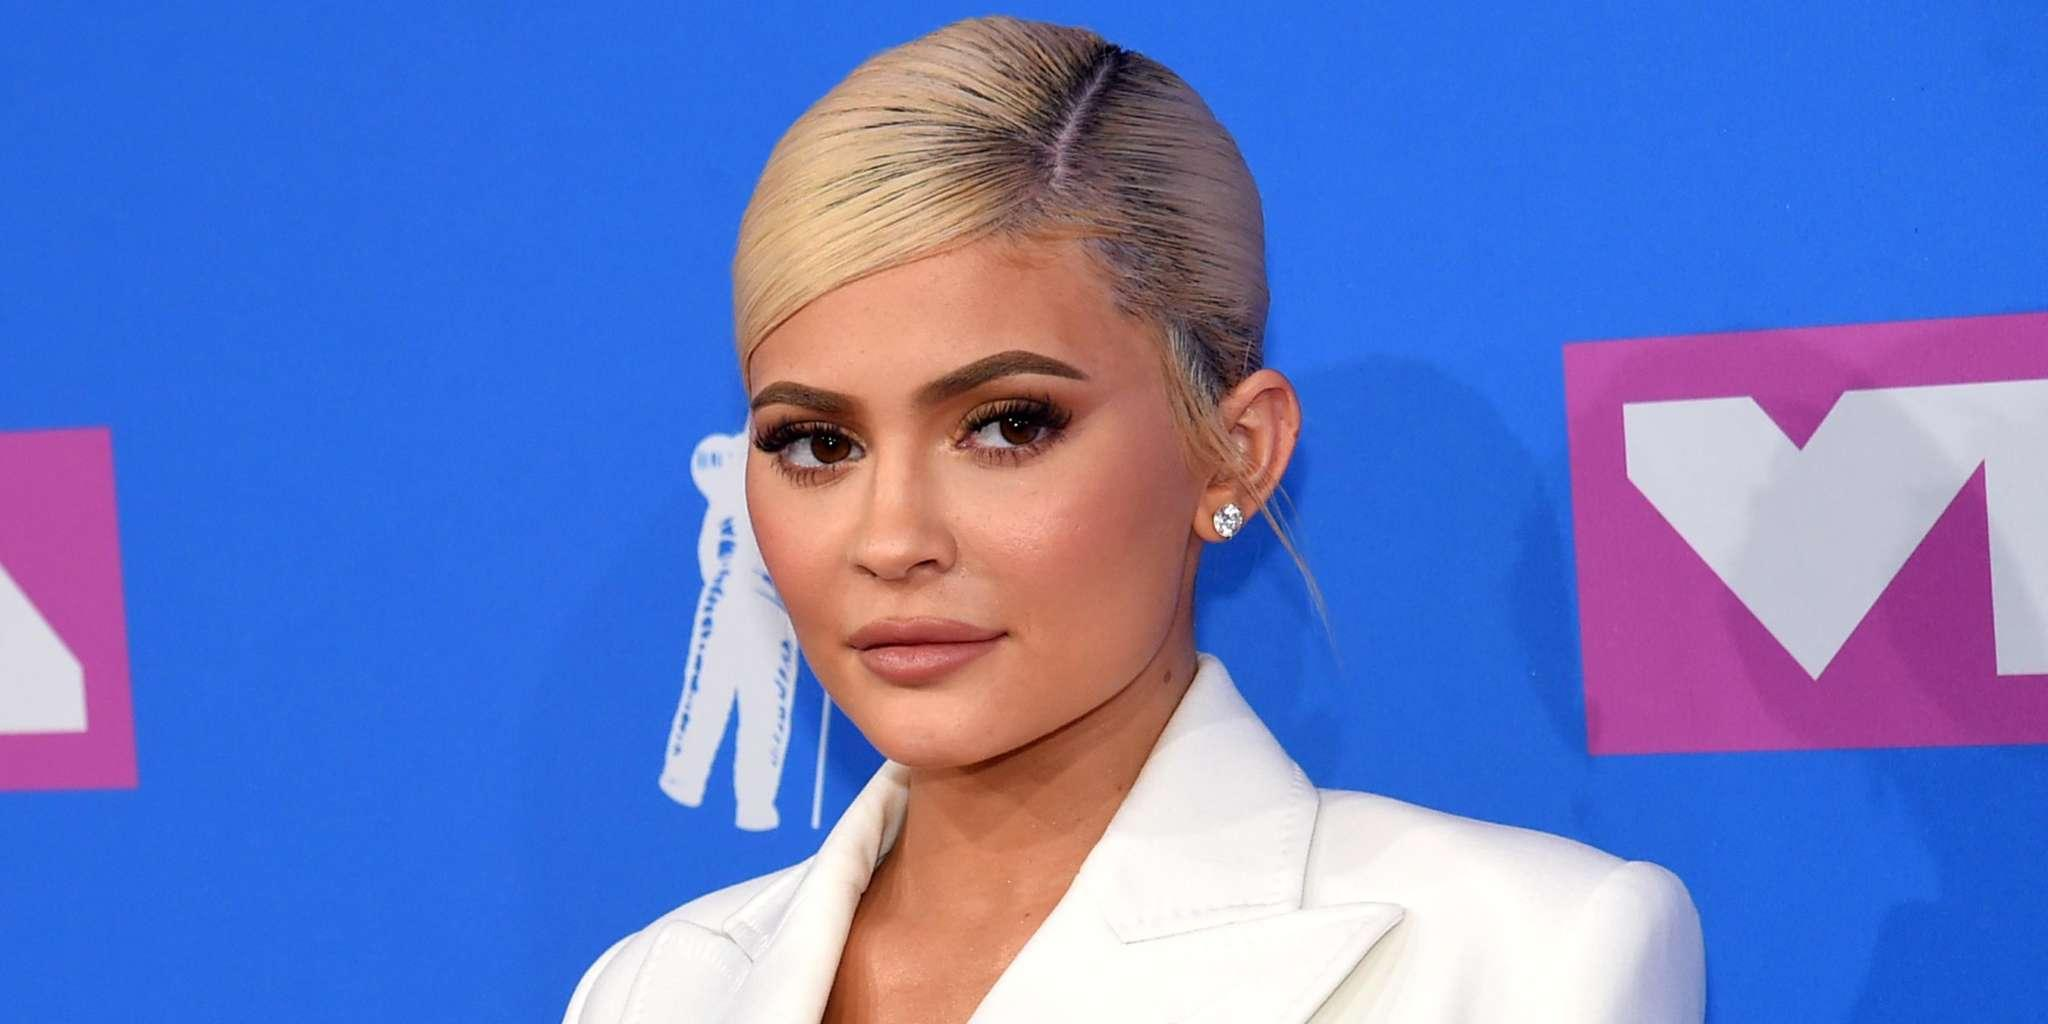 Kylie Jenner Posts Emotional Message - She Talks About Losing Friends And Herself